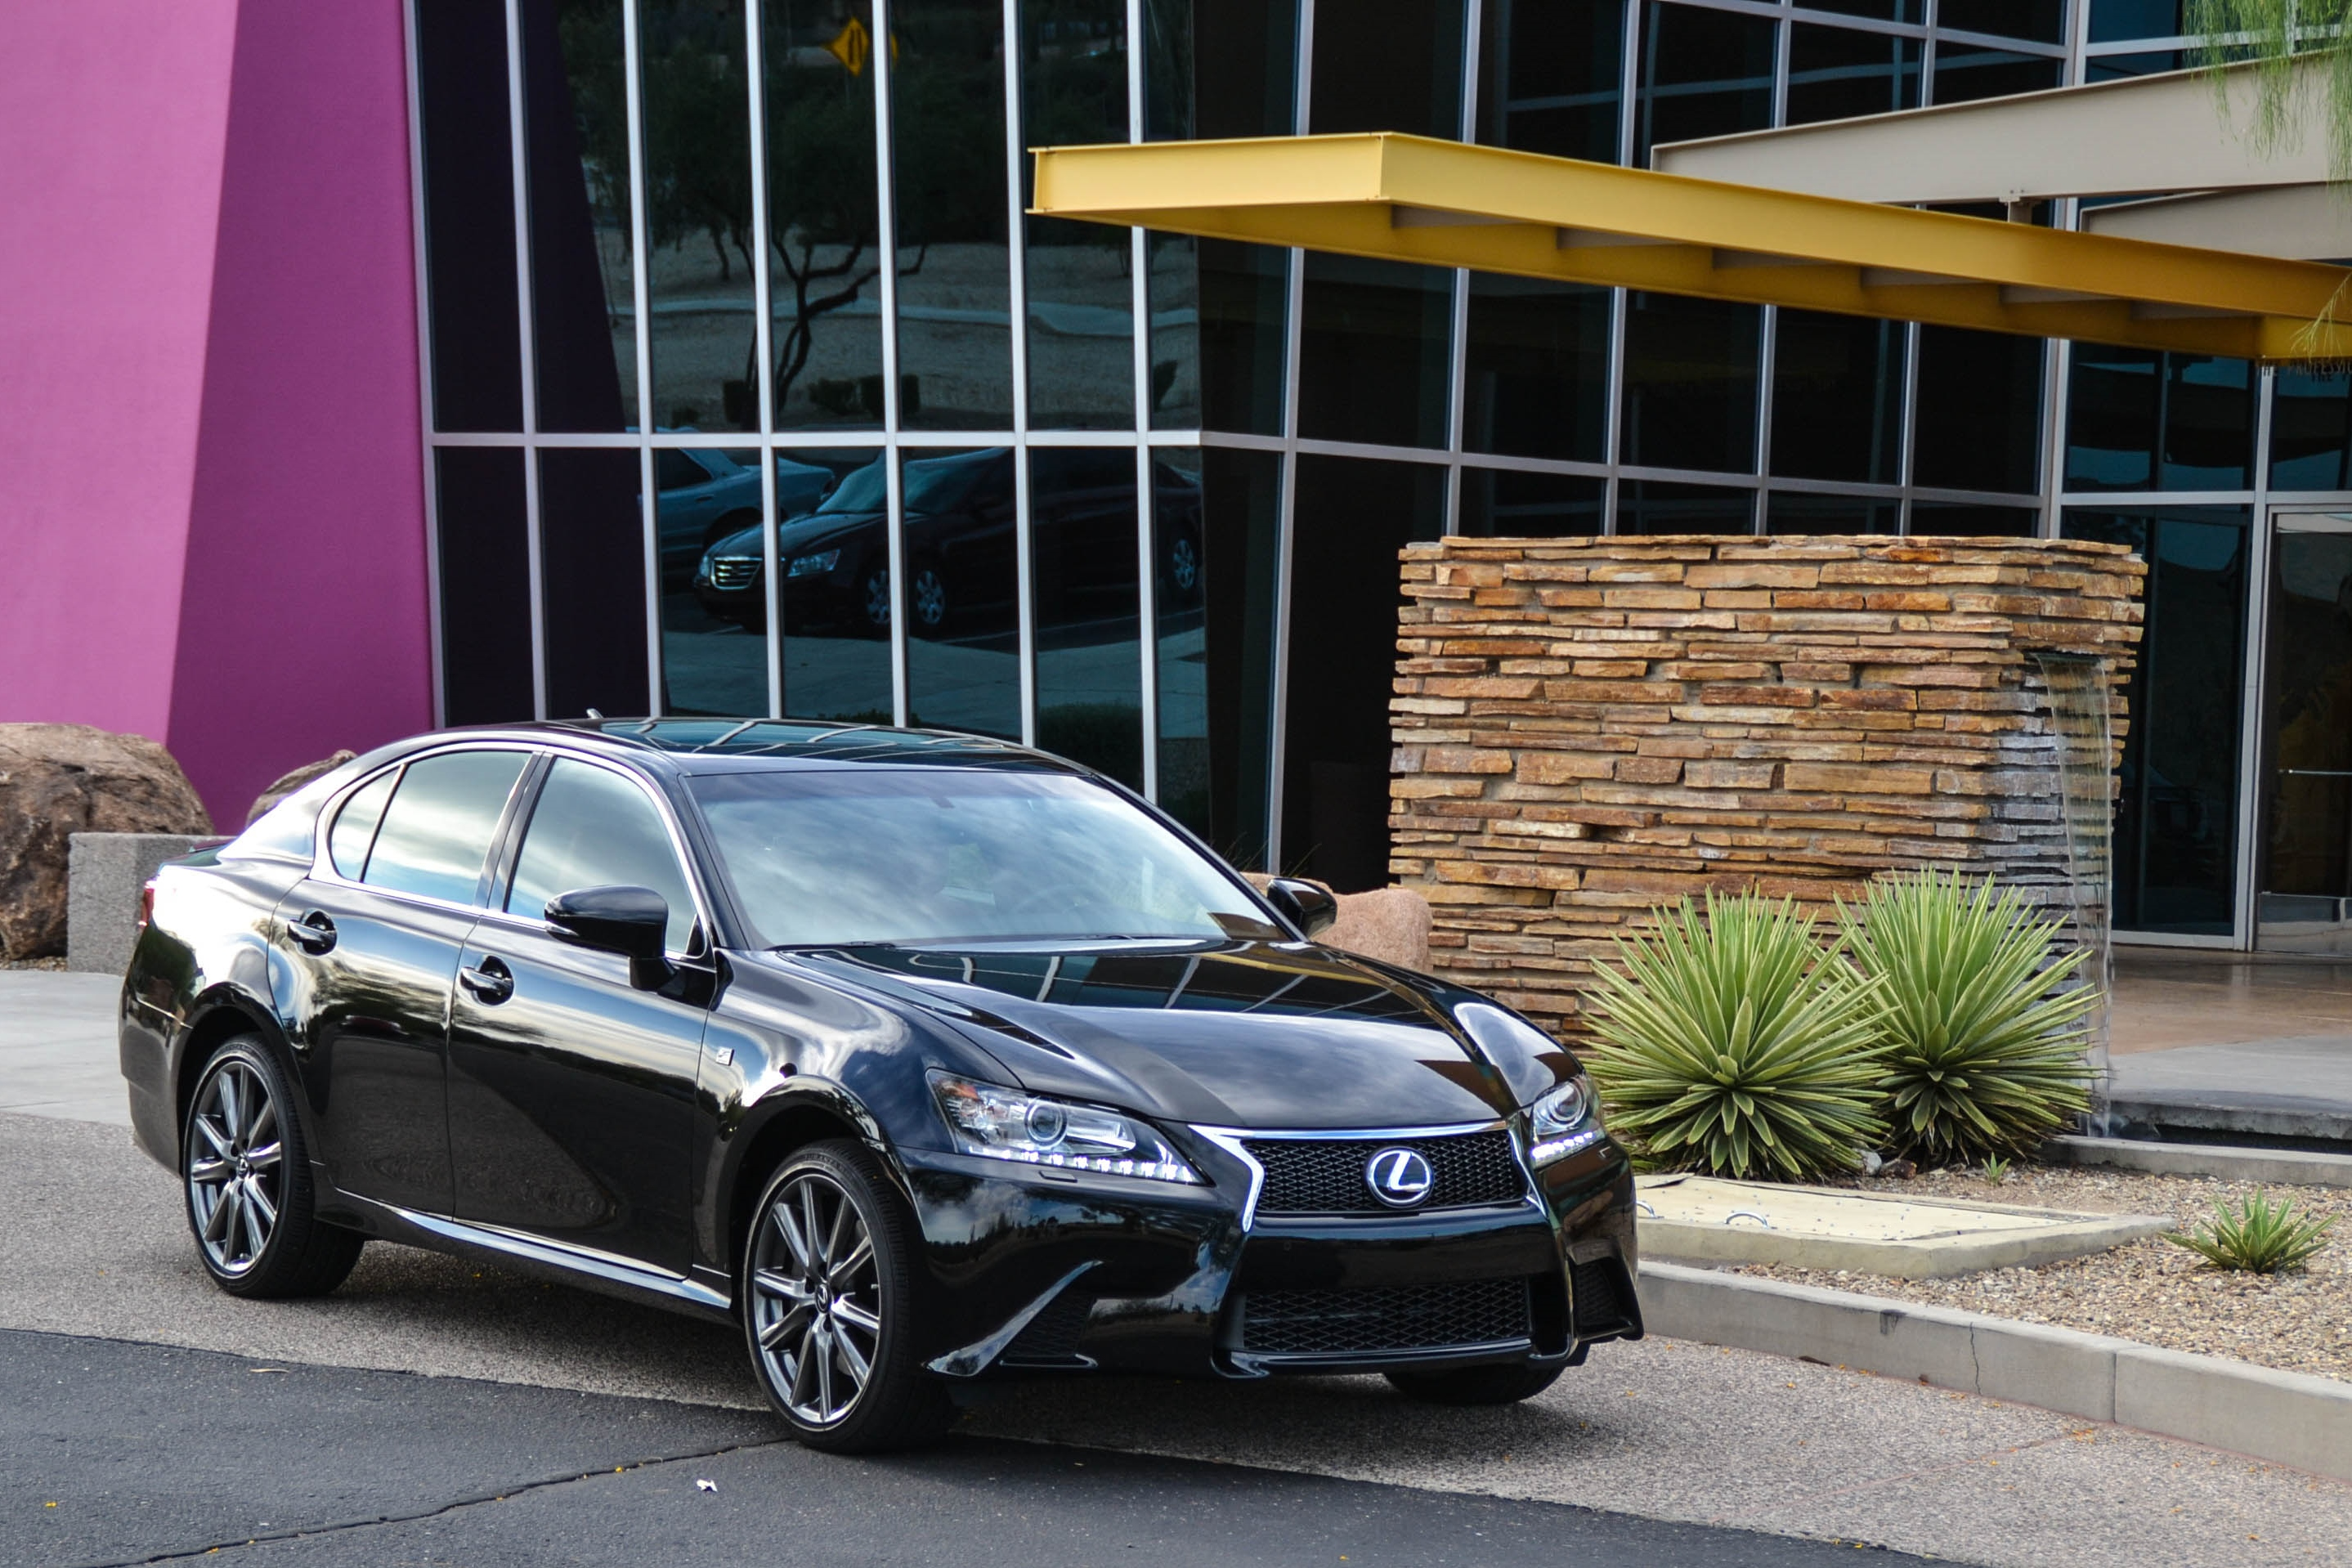 room with awd gs been f size the report sport of is plenty more lexus has good review sedan chavez always but catering to opinion my that this keeping a automotive comfort